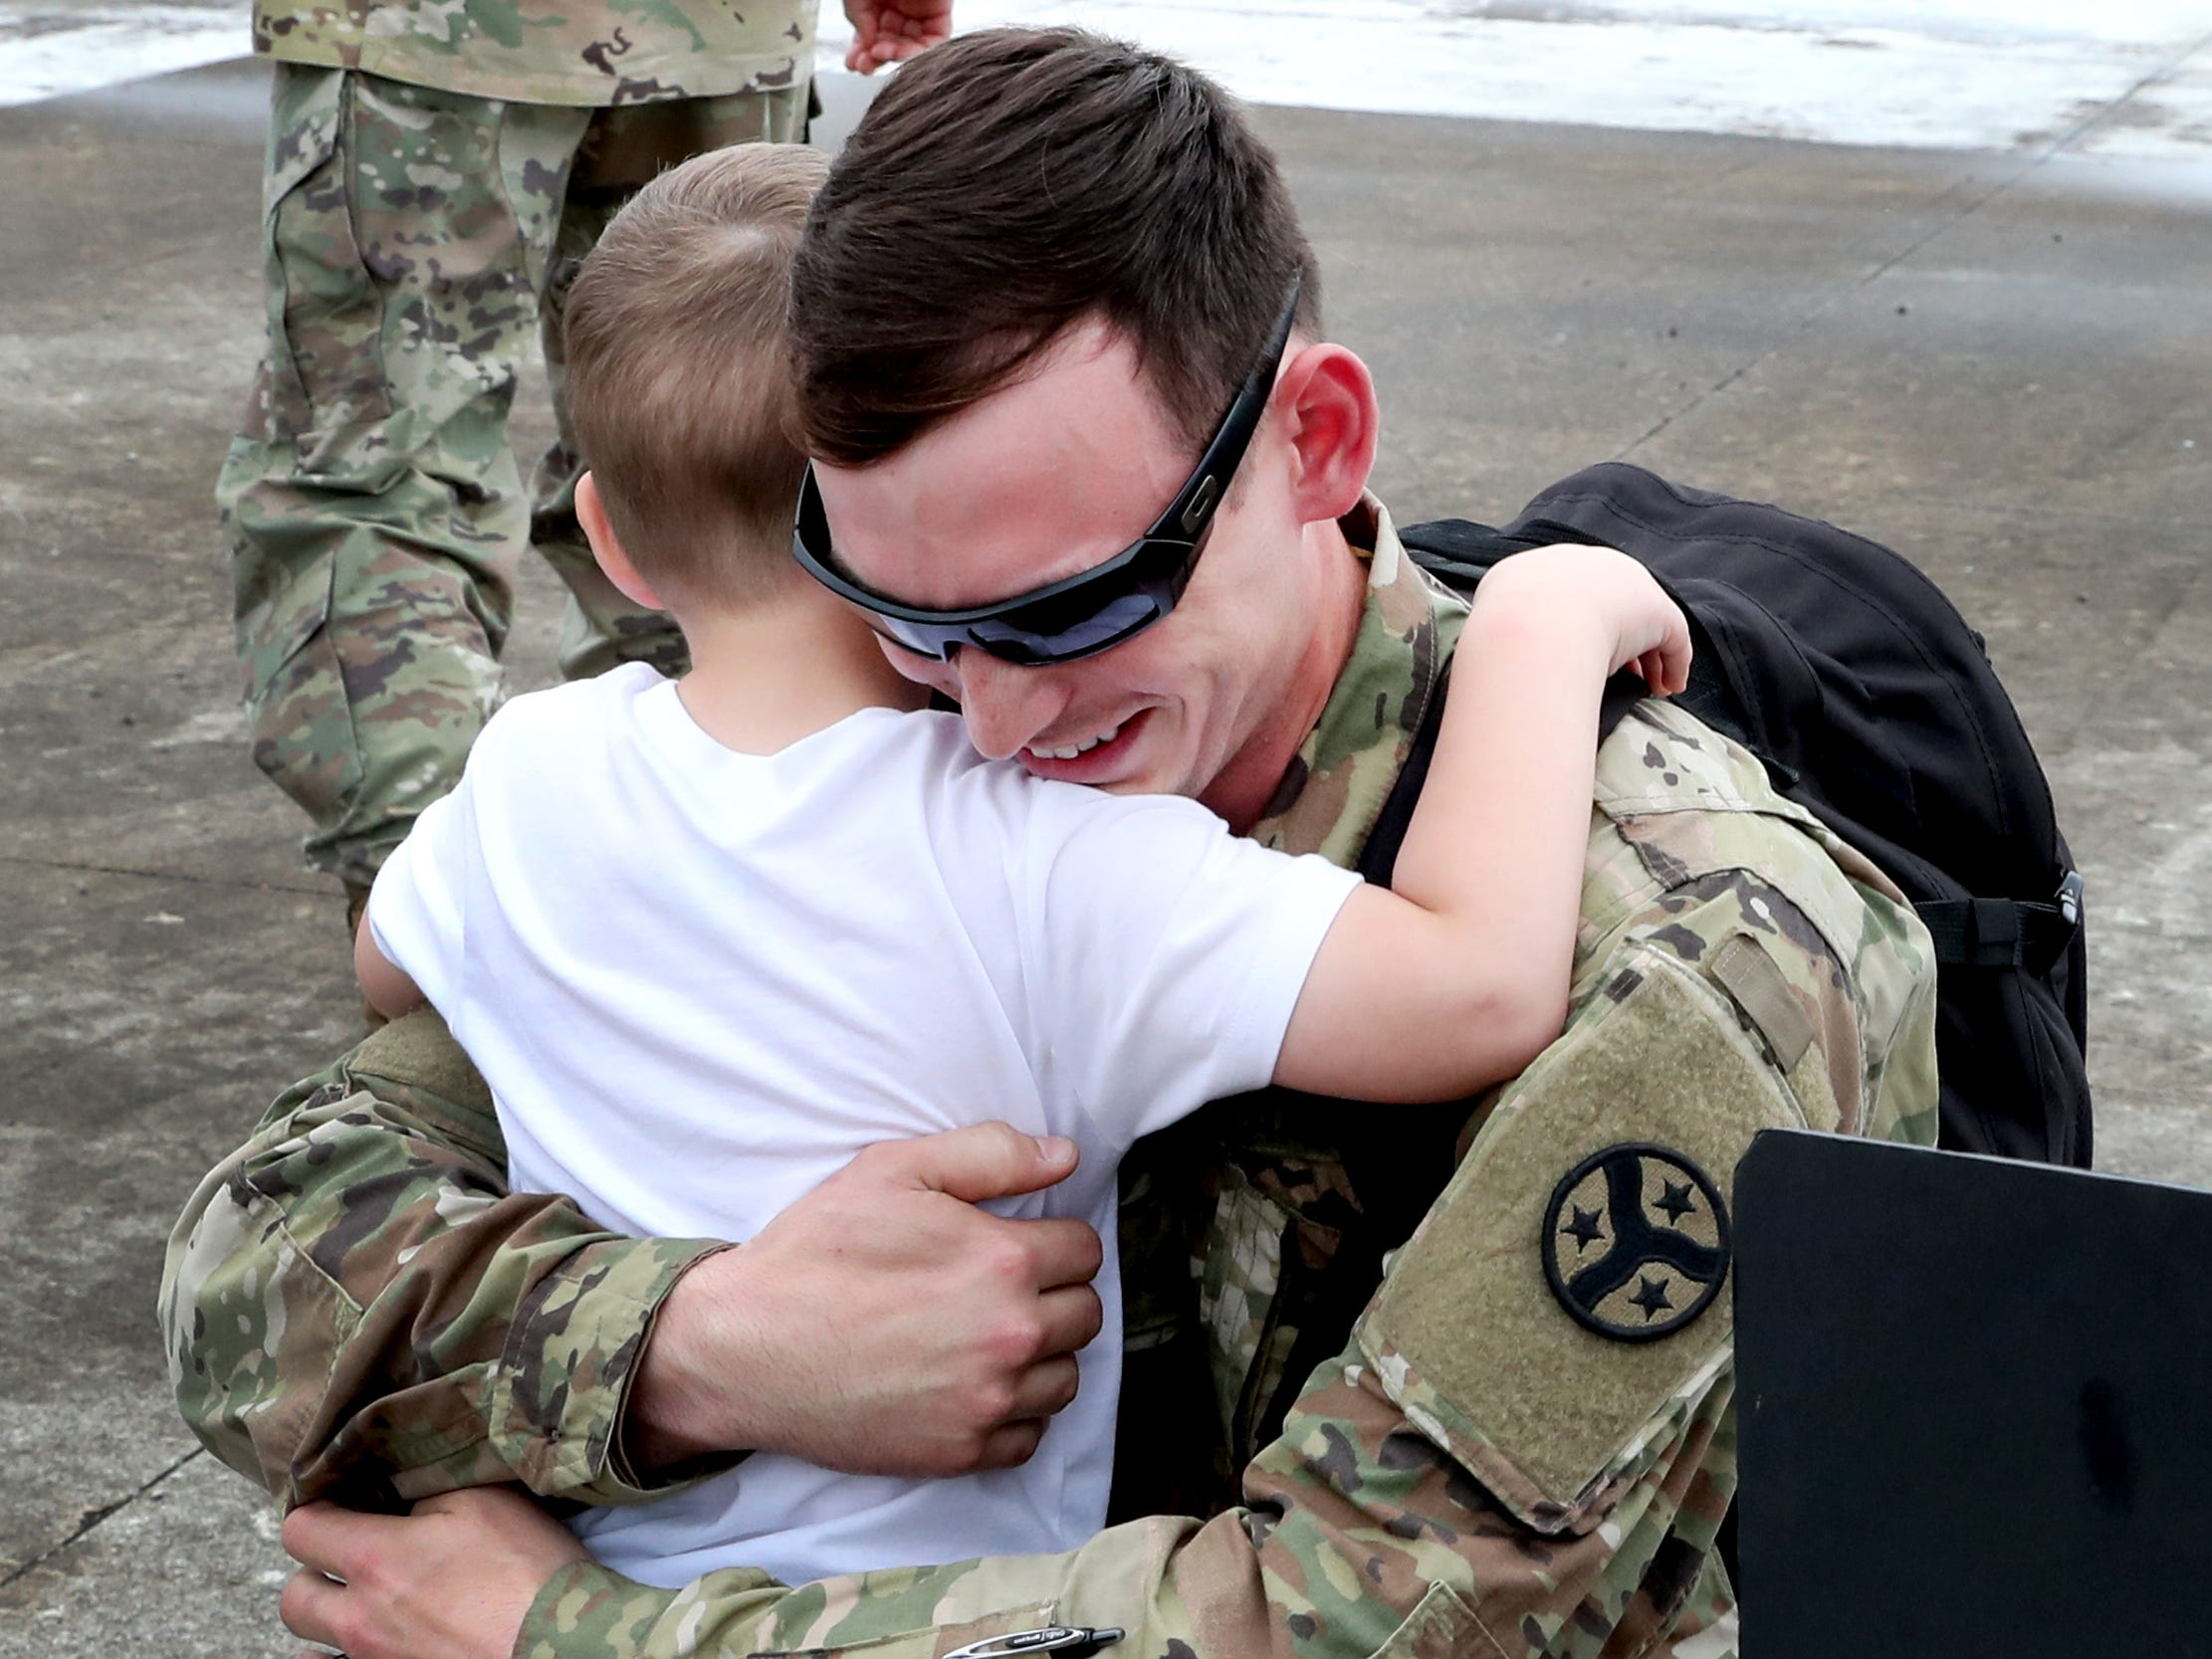 Sgt. Cody Chipman, with the 278th ACR hugs his son Camden Chipman, 3 as he returns to the Volunteer Training Site in Smyrna, after a 9 month overseas deployment on Thursday, May 9, 2019.